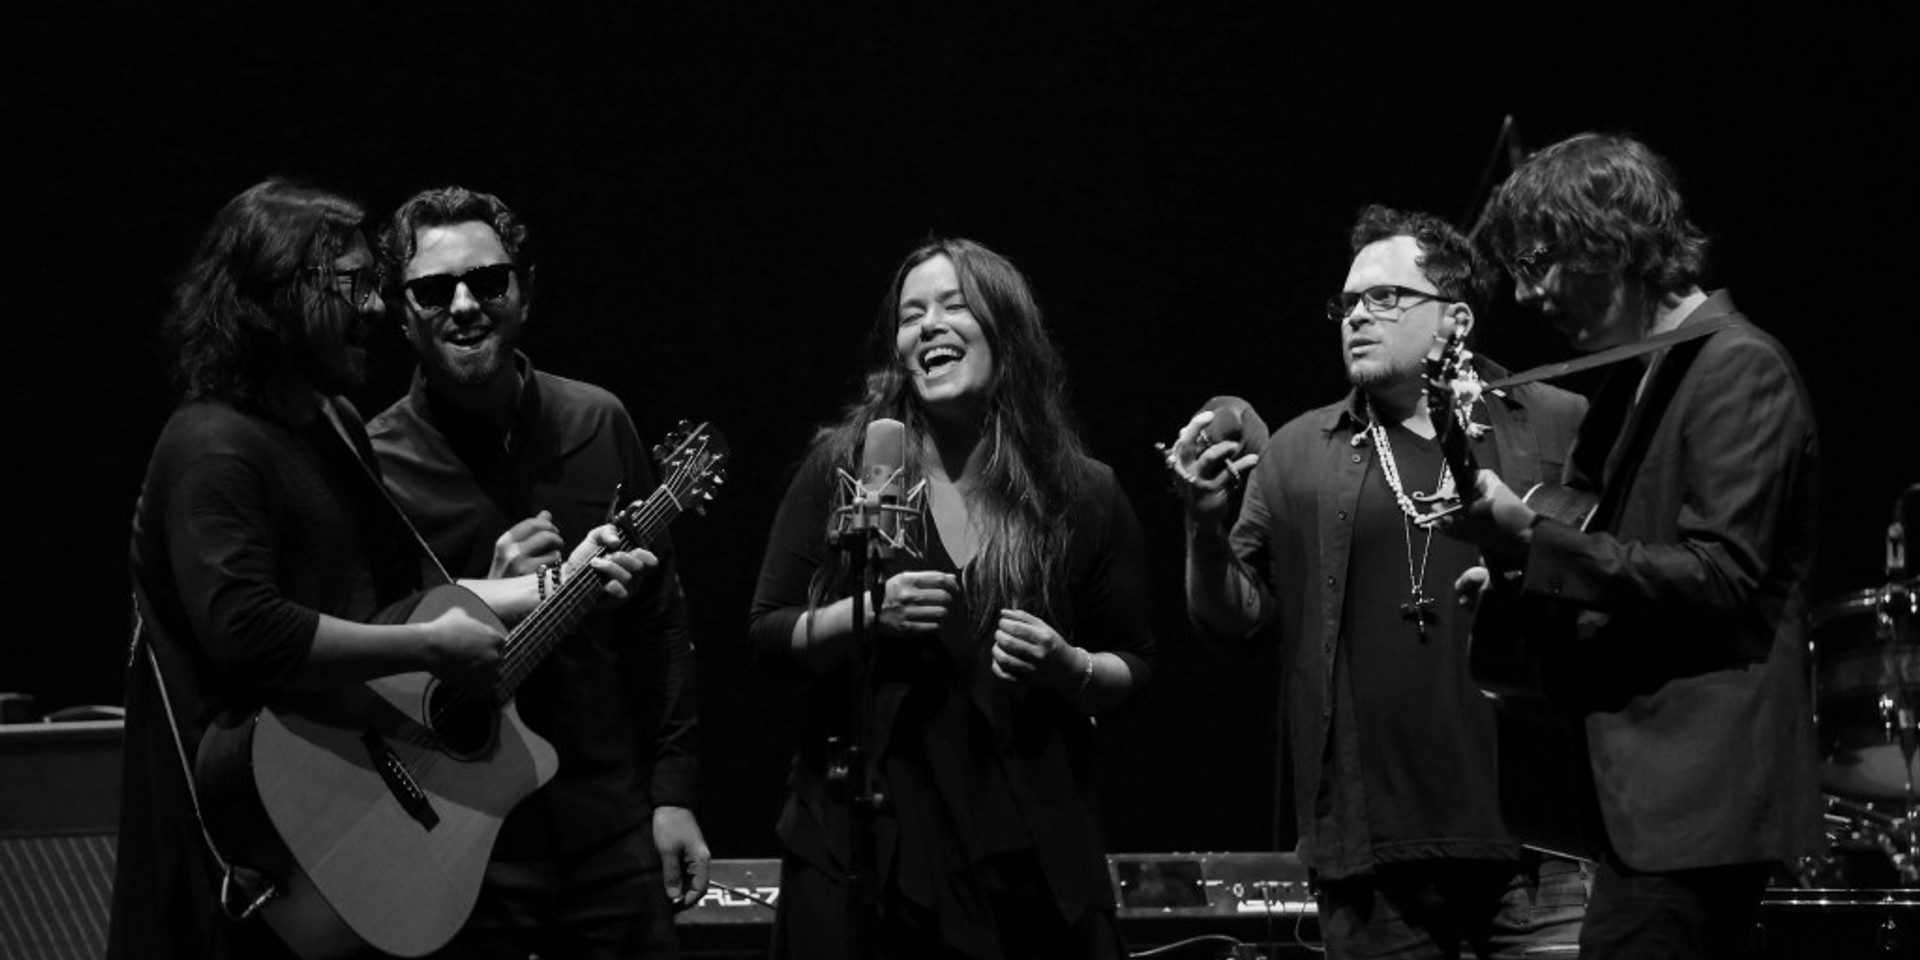 GIG REPORT: Why I watched Rachael Yamagata at her eighth concert in Singapore